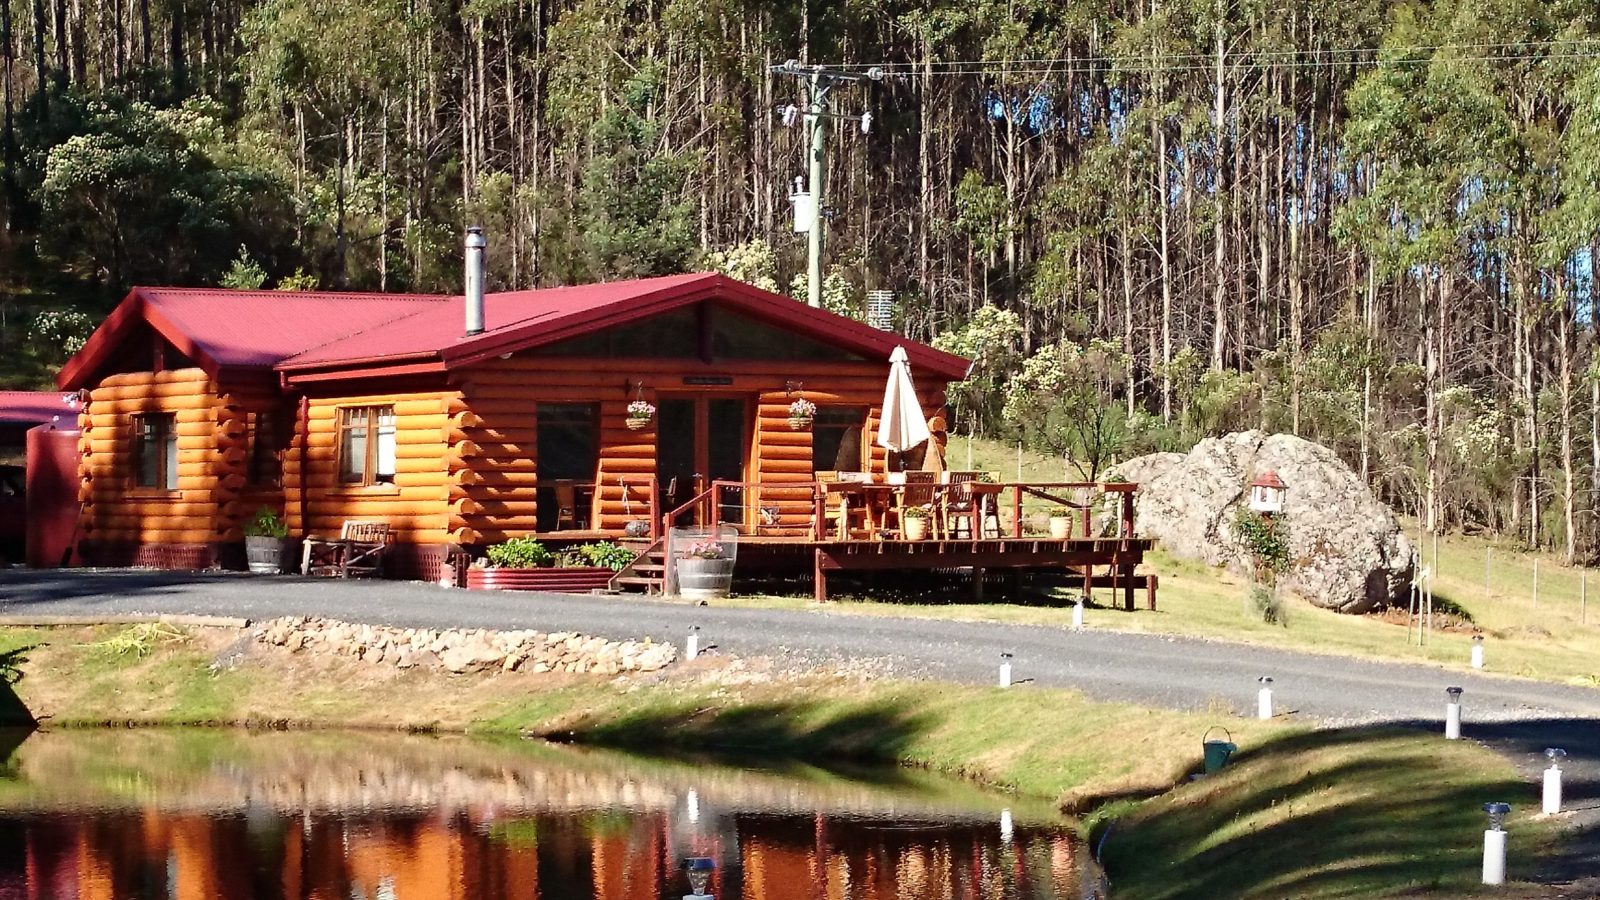 Frontal view of the log chalet